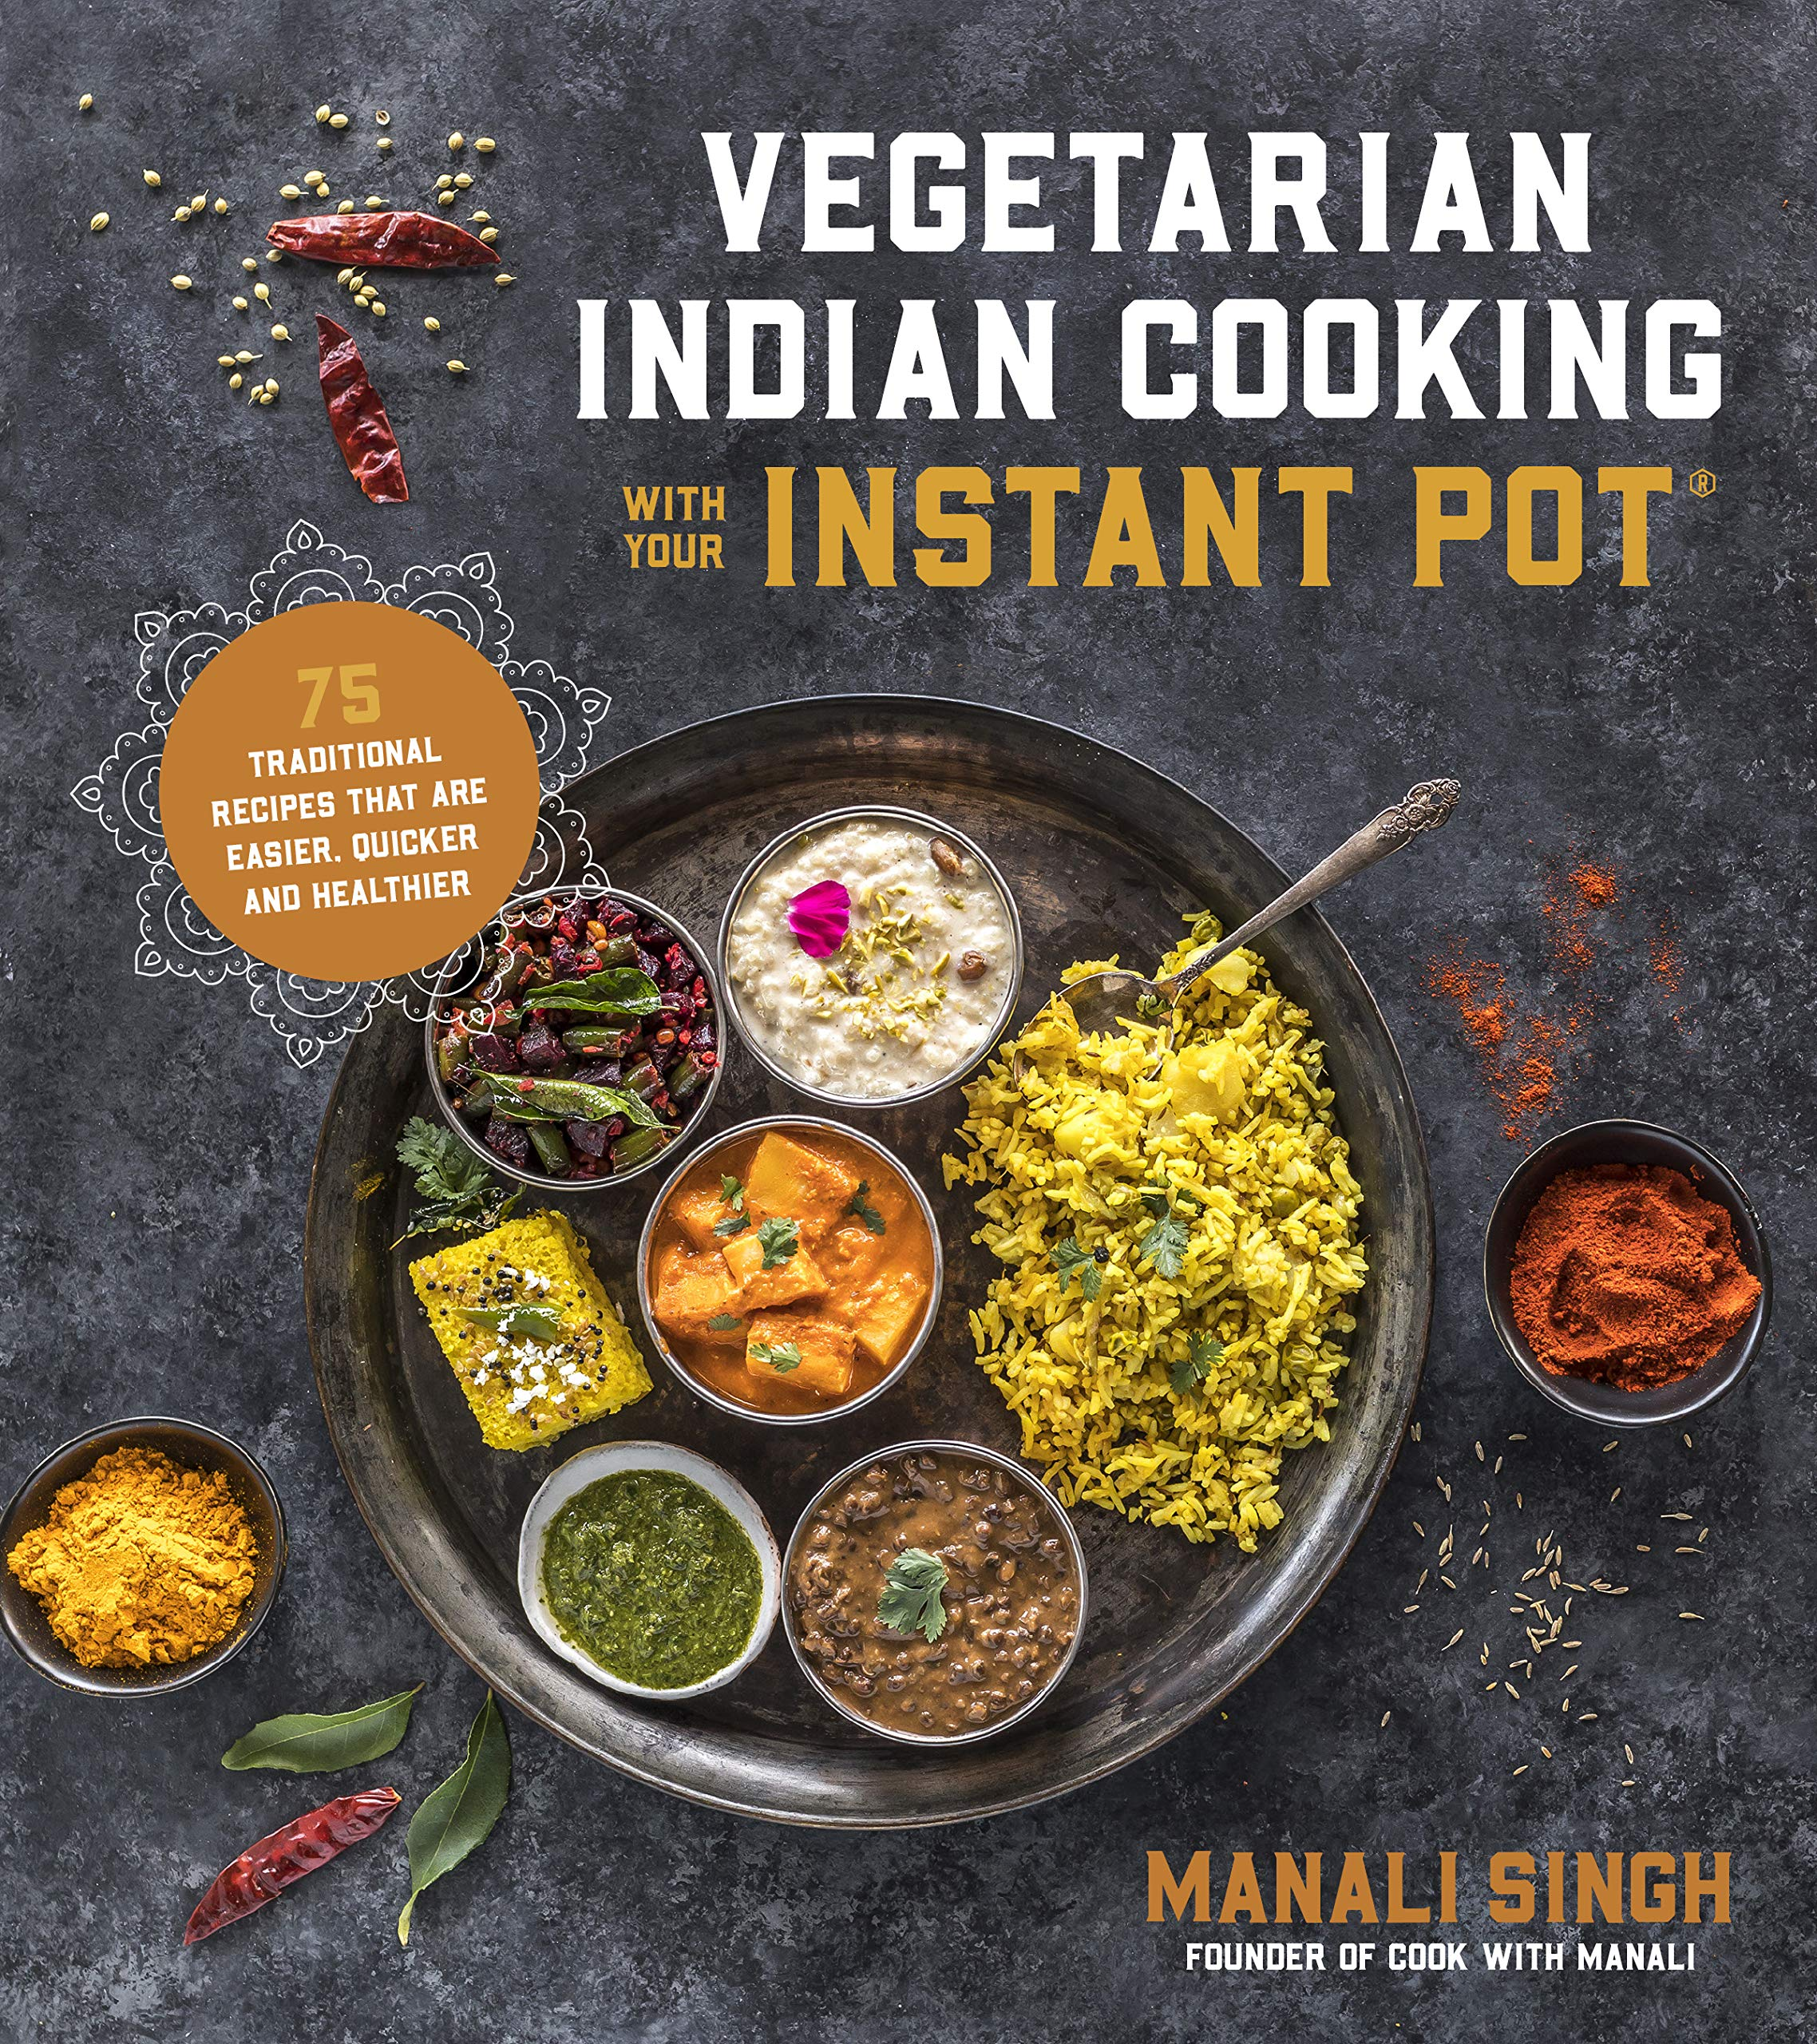 Vegetarian indian cooking with your instant pot 75 traditional vegetarian indian cooking with your instant pot 75 traditional recipes that are easier quicker and healthier manali singh 9781624146459 amazon forumfinder Gallery